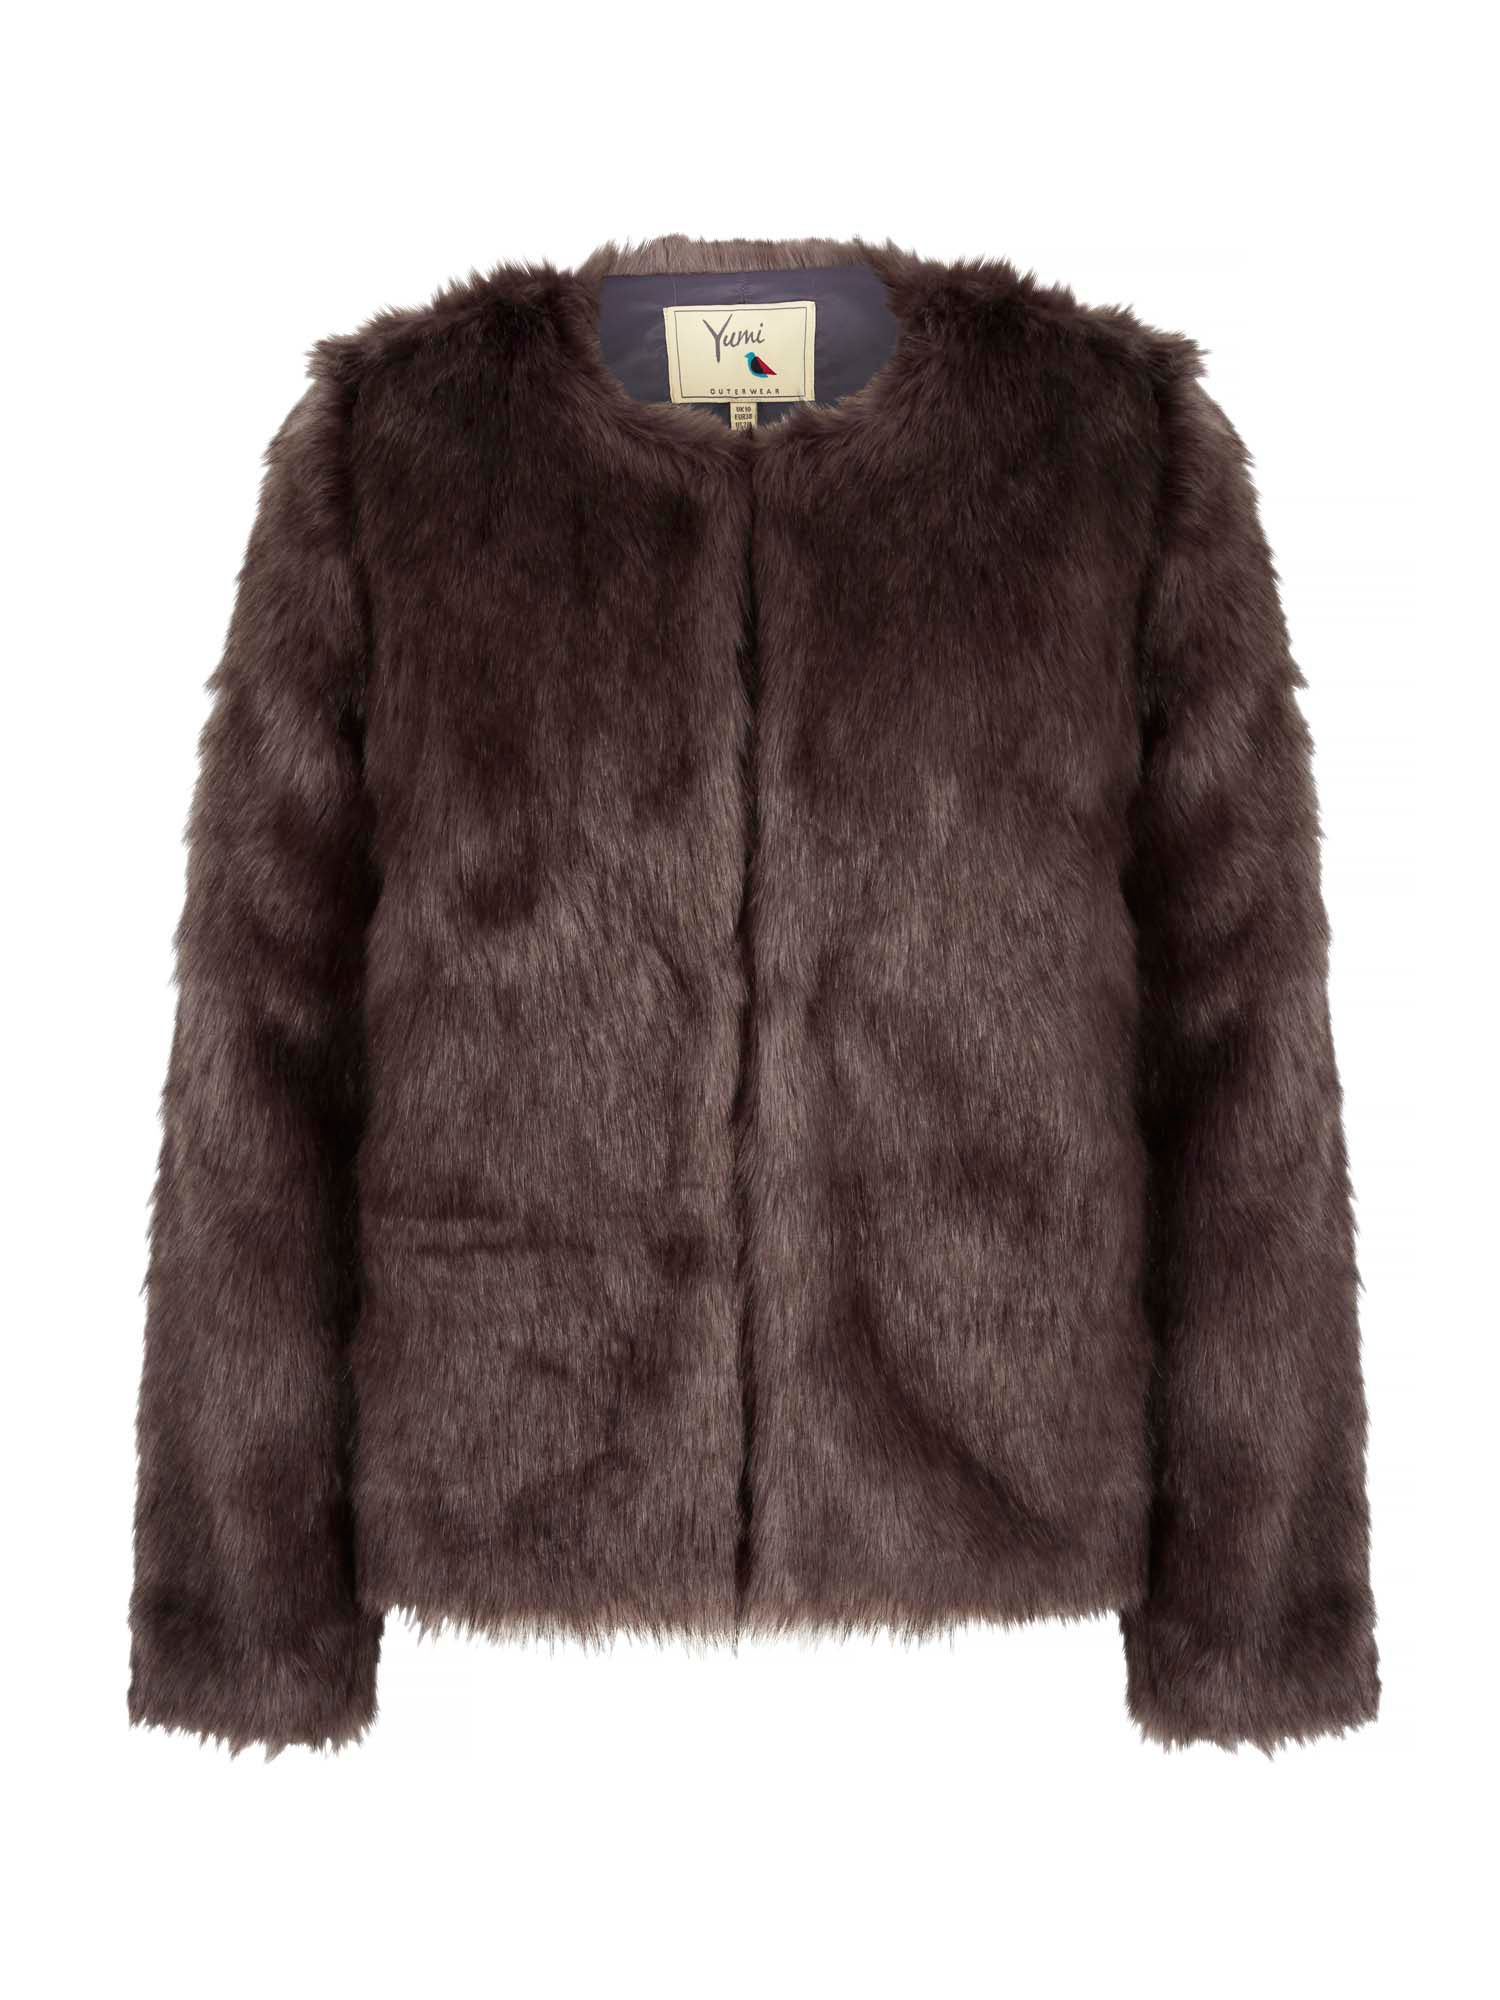 Yumi Fluffy Faux Fur Jacket, Grey